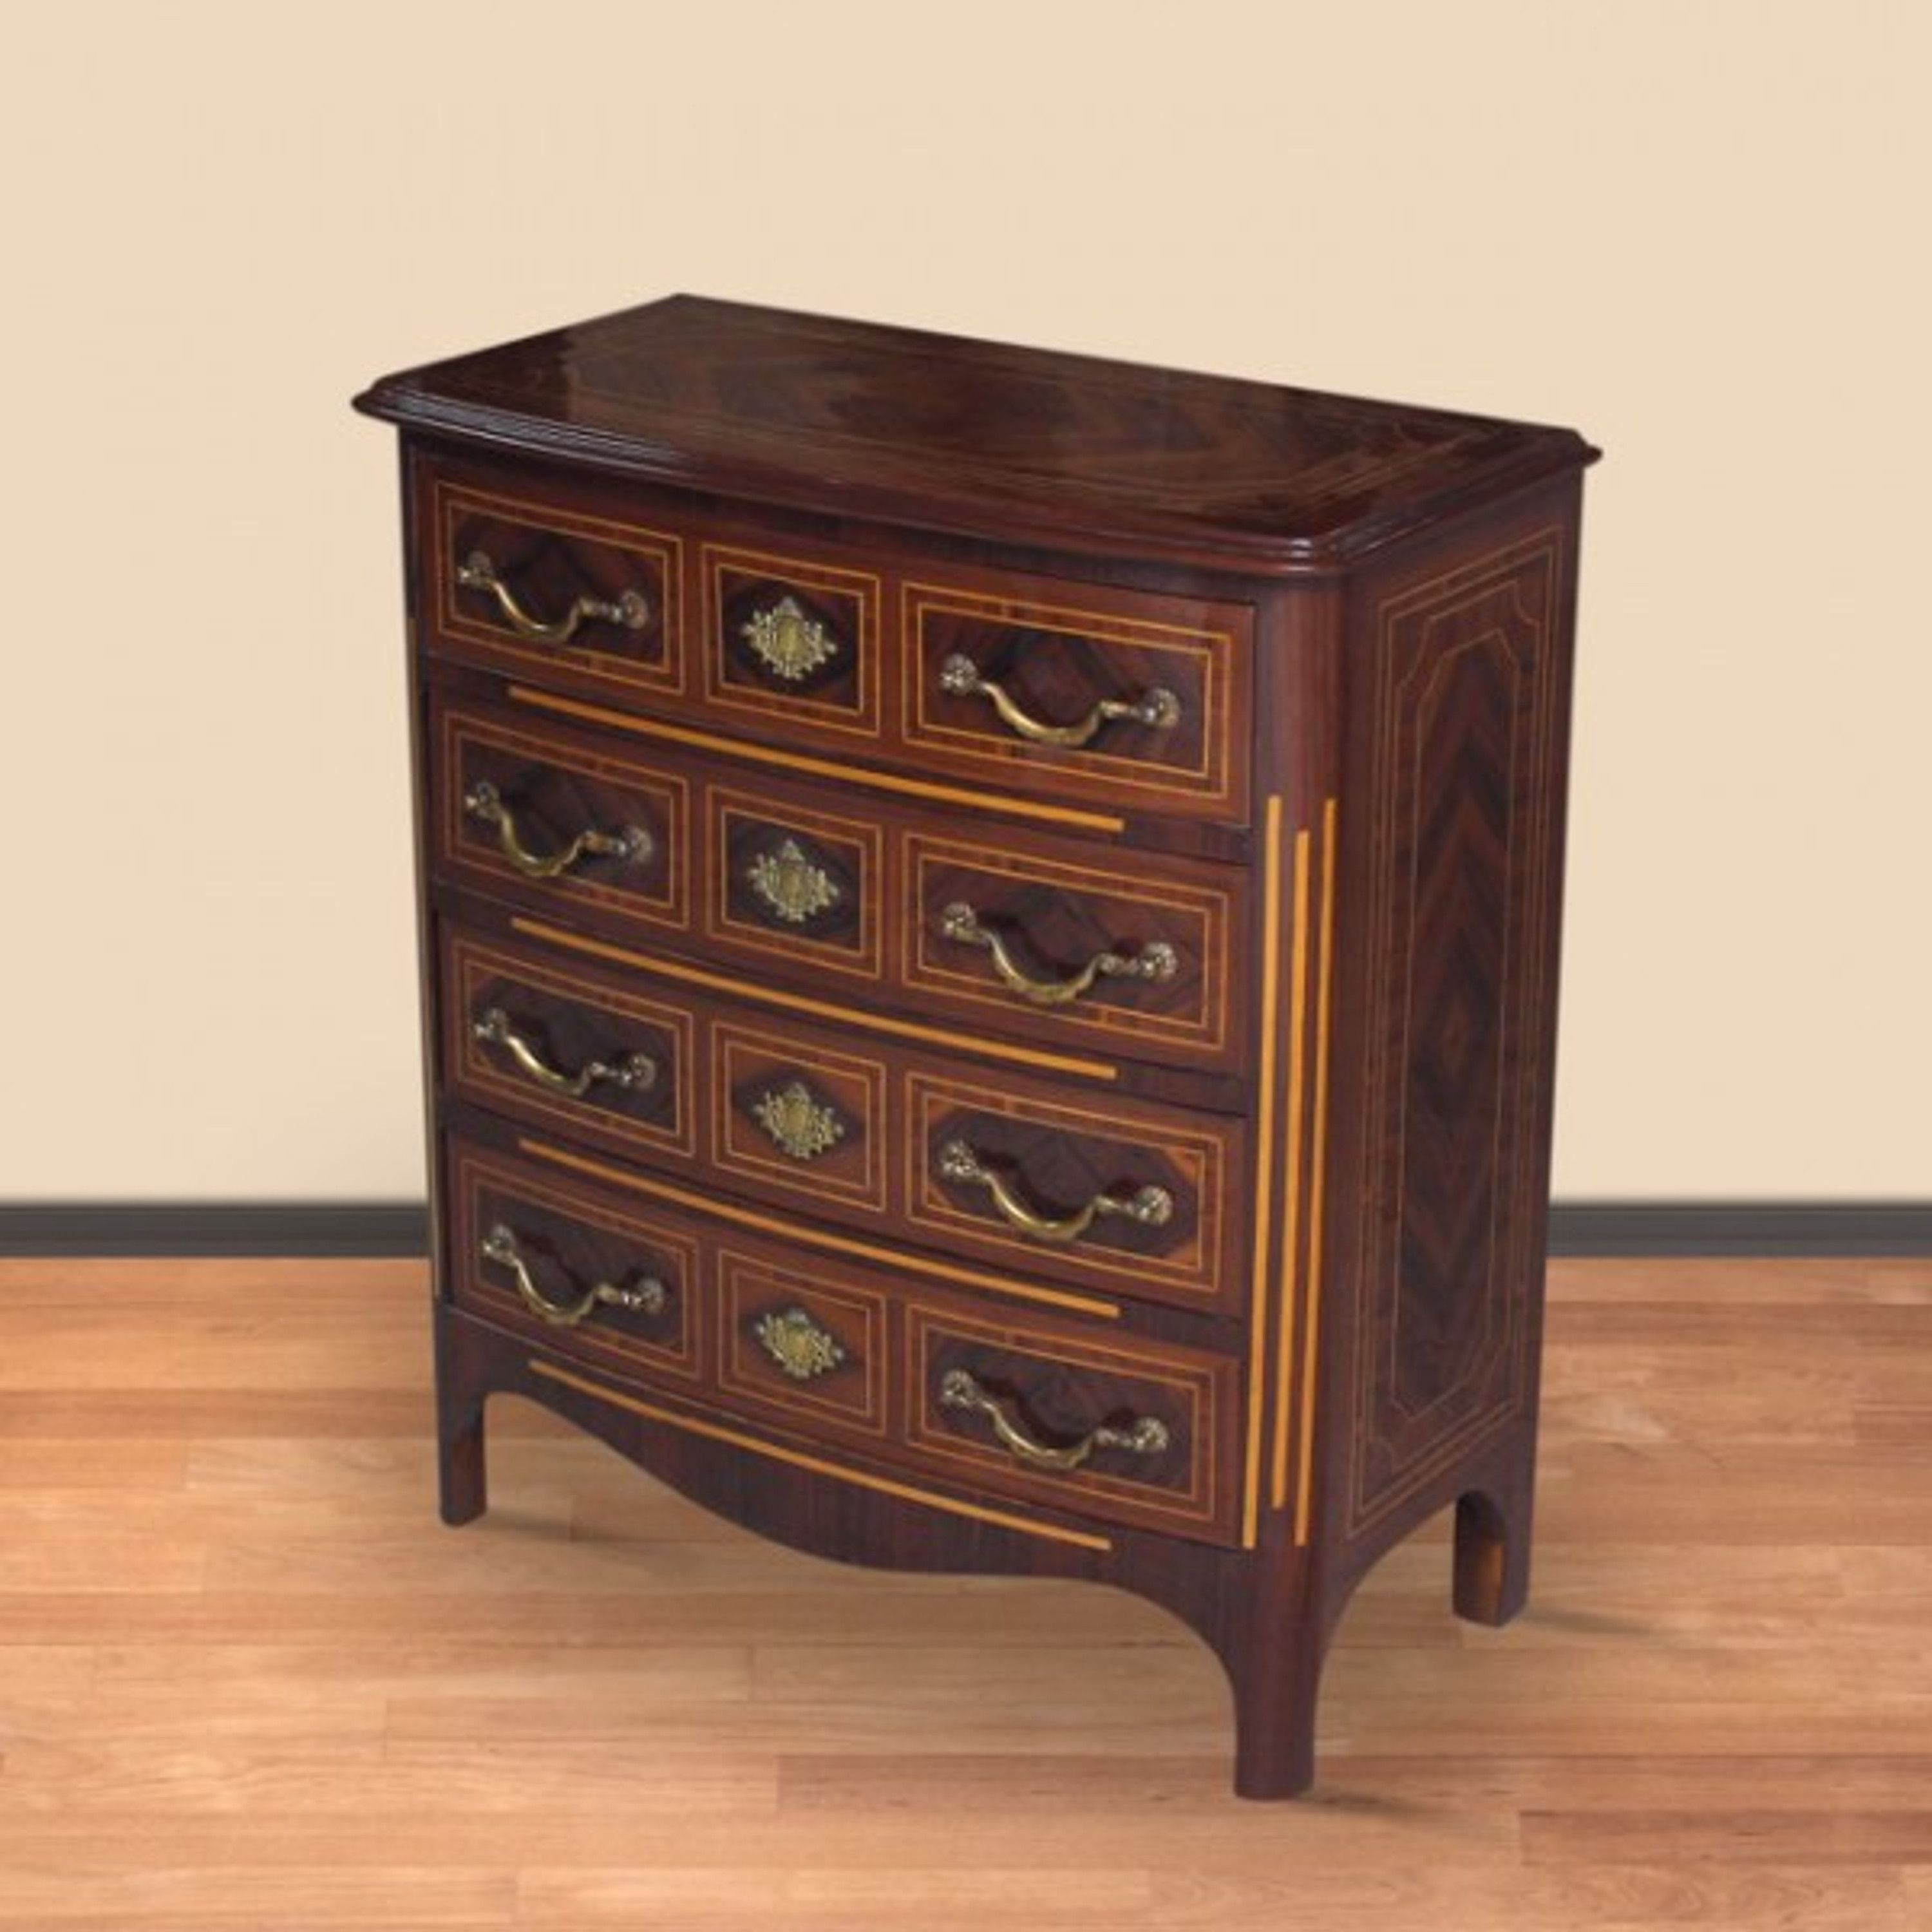 barock kommode antik stil furnier alkm1010nl louisxv online shop f r antike m bel. Black Bedroom Furniture Sets. Home Design Ideas